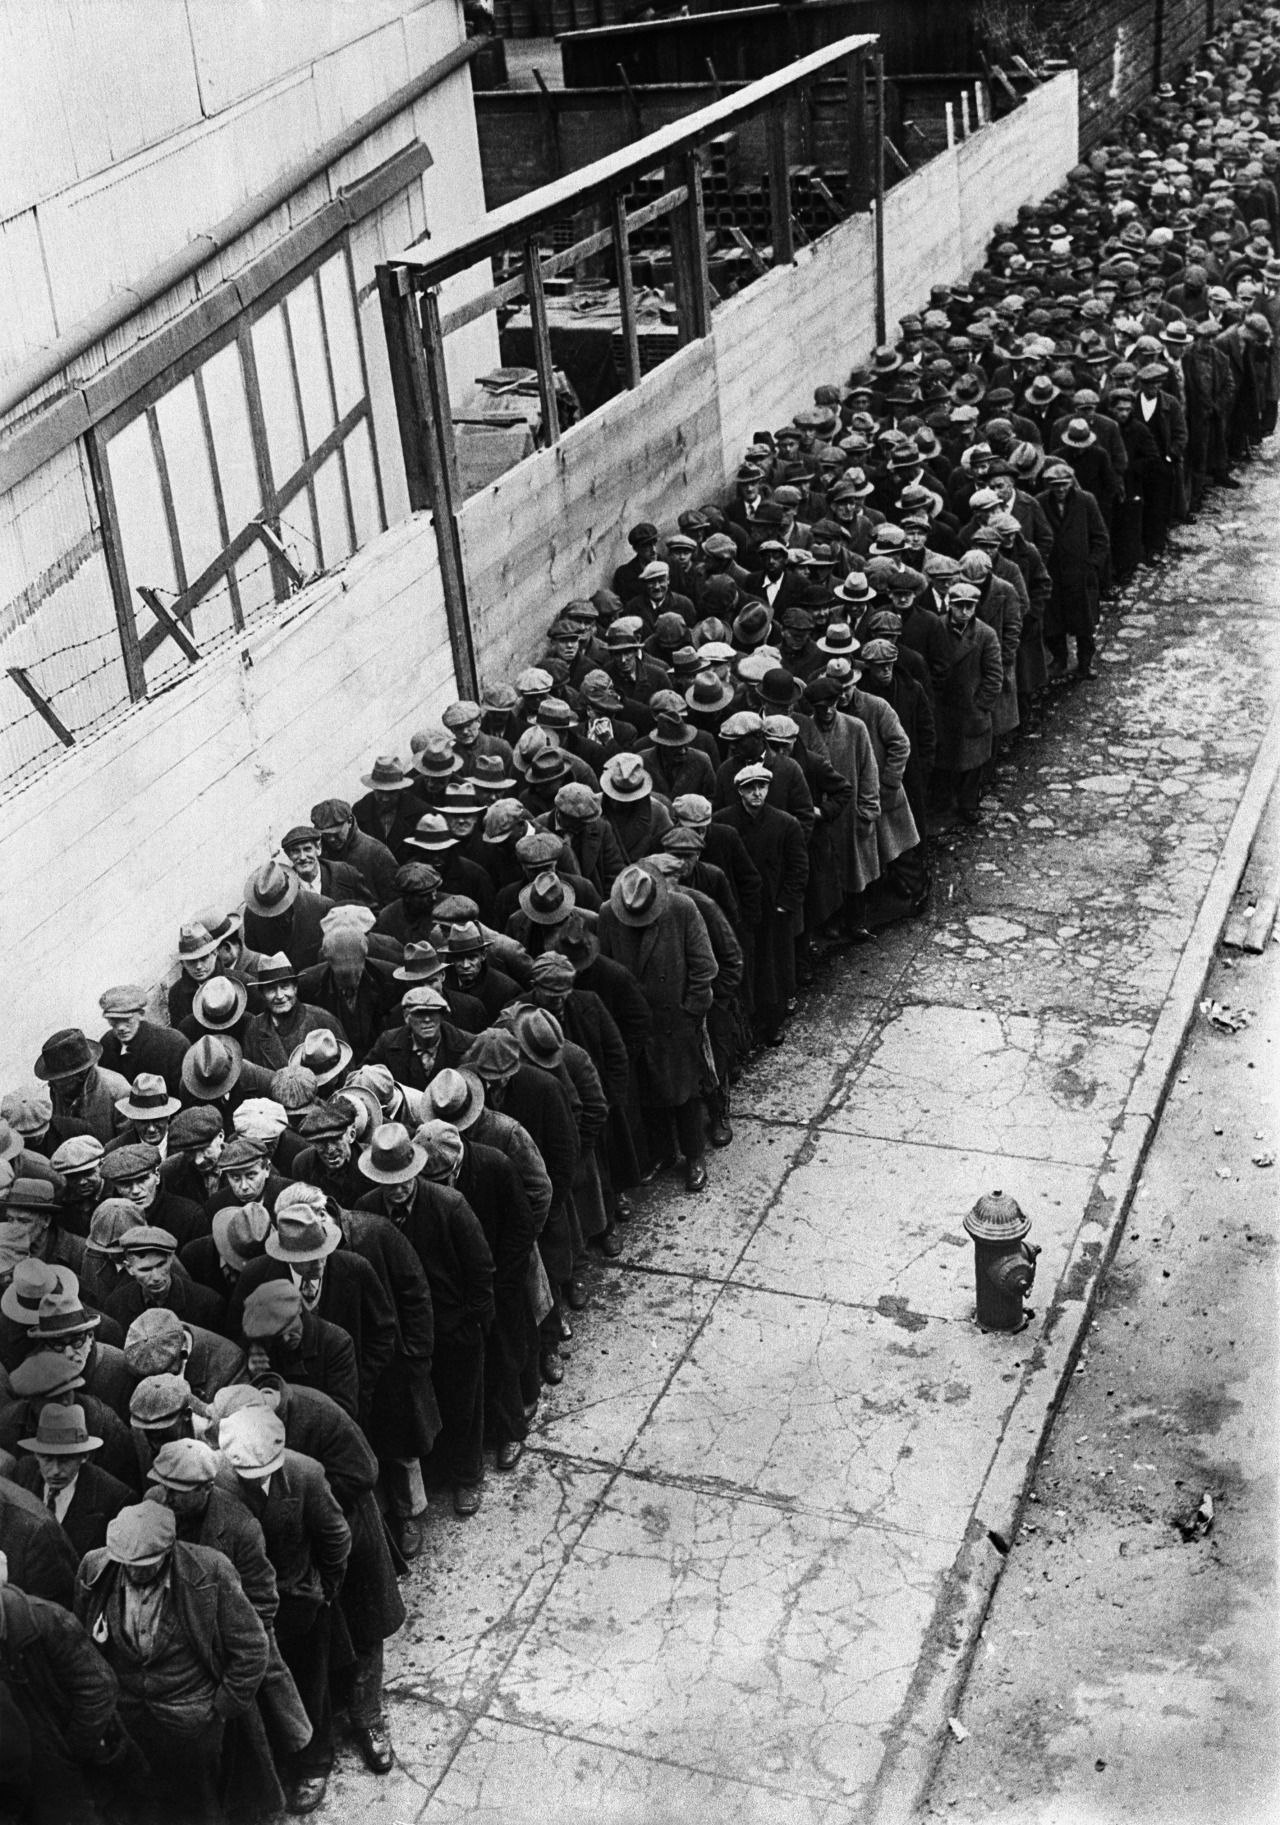 luzfosca: the great depression, 1929-1933 men waiting in line for an